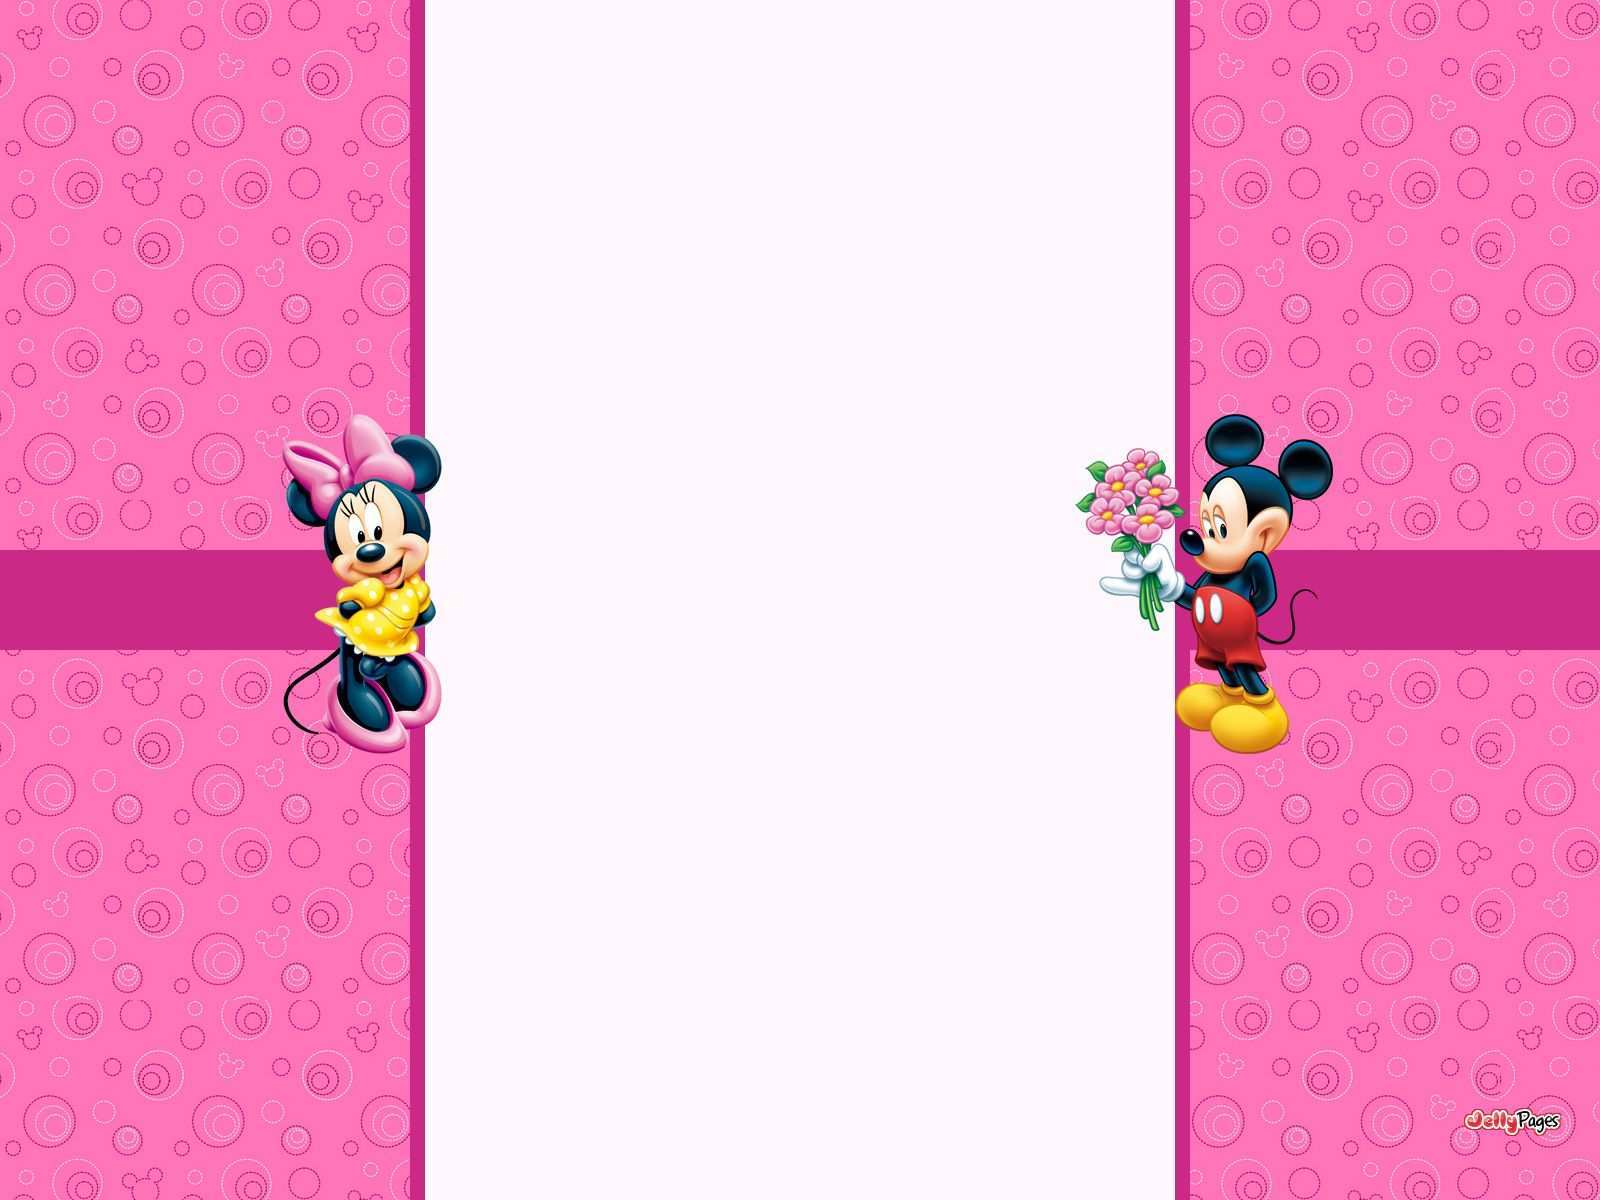 Mickey And Minnie Great For Backdrop Minnie Mouse Template Mickey Mouse Background Minnie Mouse Pink